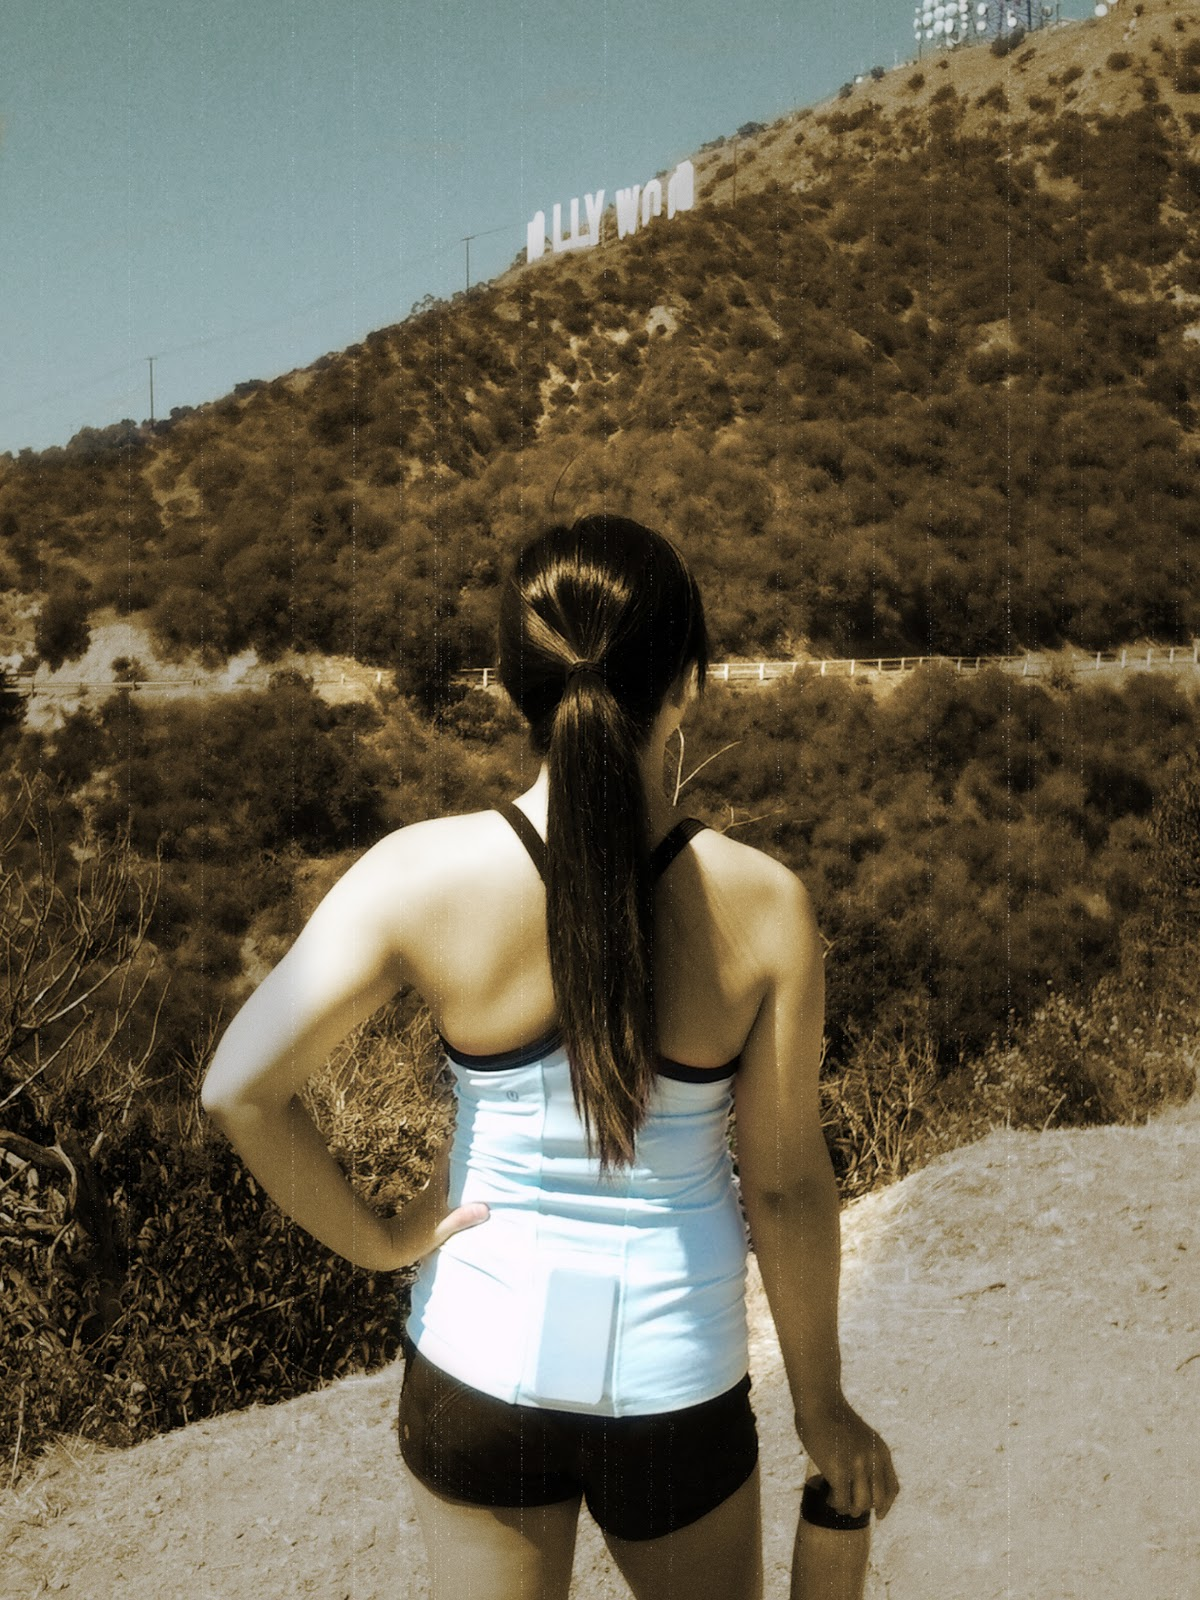 My Superficial Endeavors Ikea: My Superficial Endeavors: Hiking To The Hollywood Sign